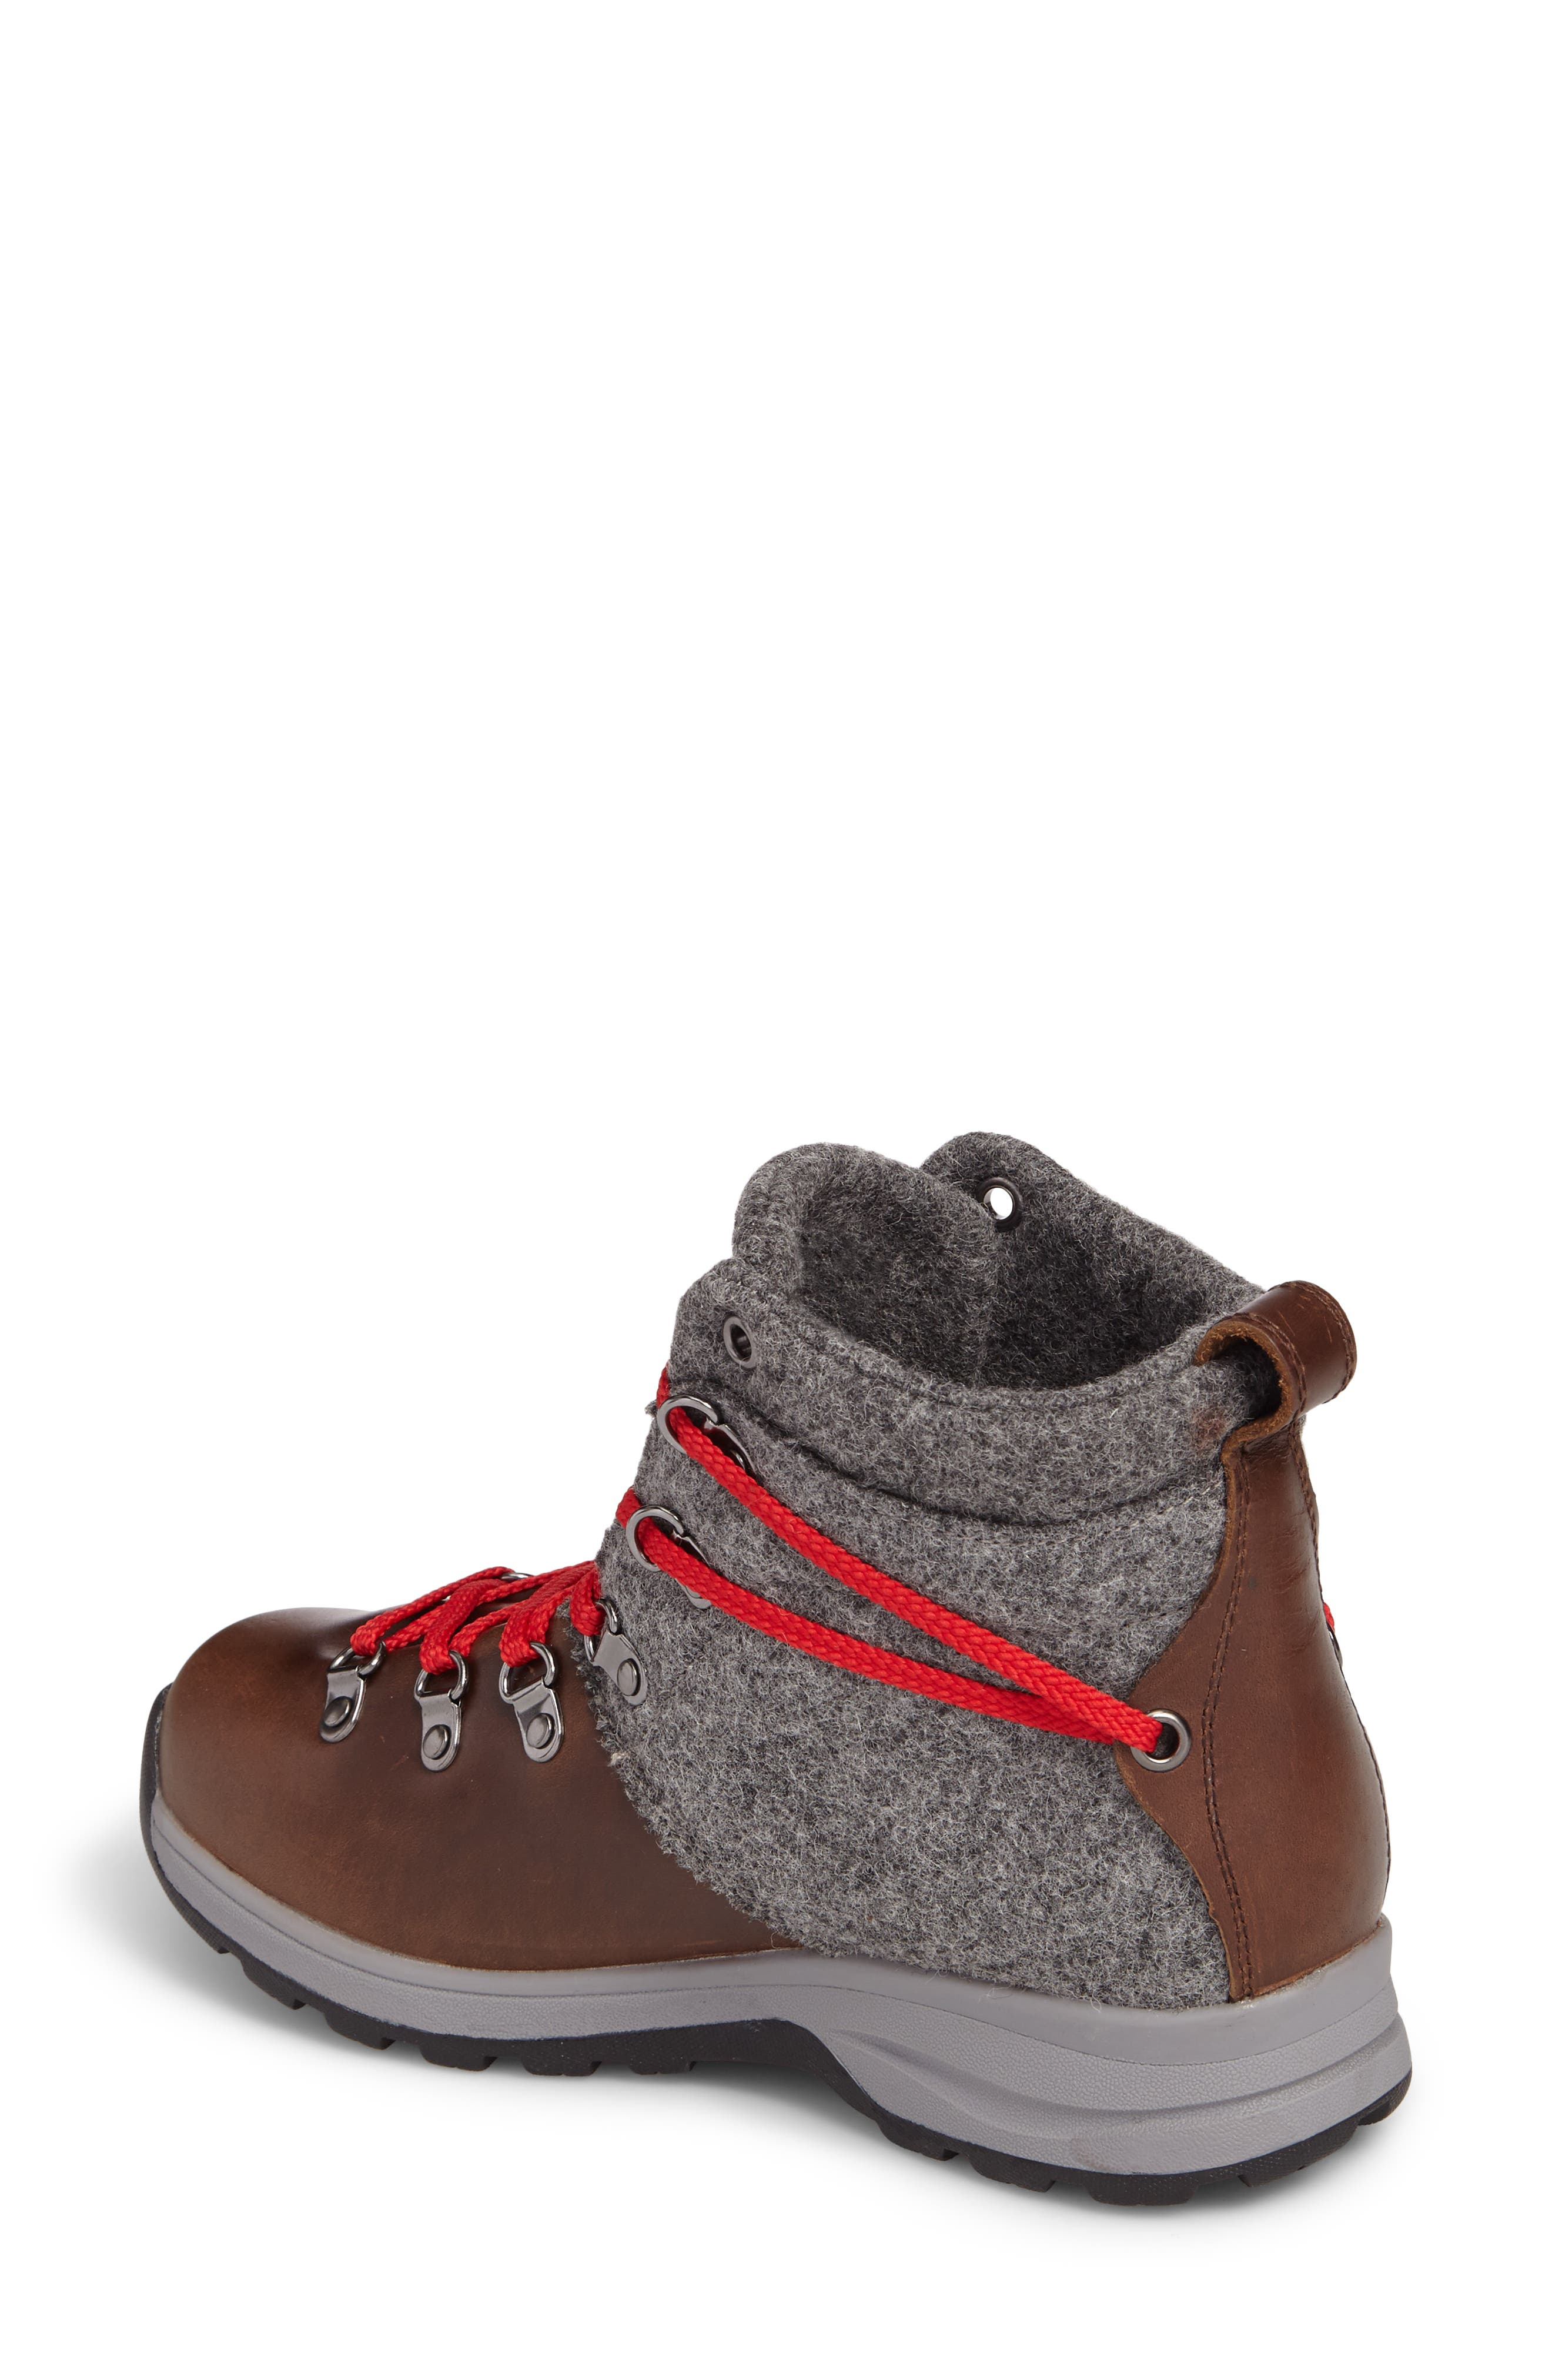 Alternate Image 2  - Woolrich Rockies II Waterproof Hiking Boot (Women)